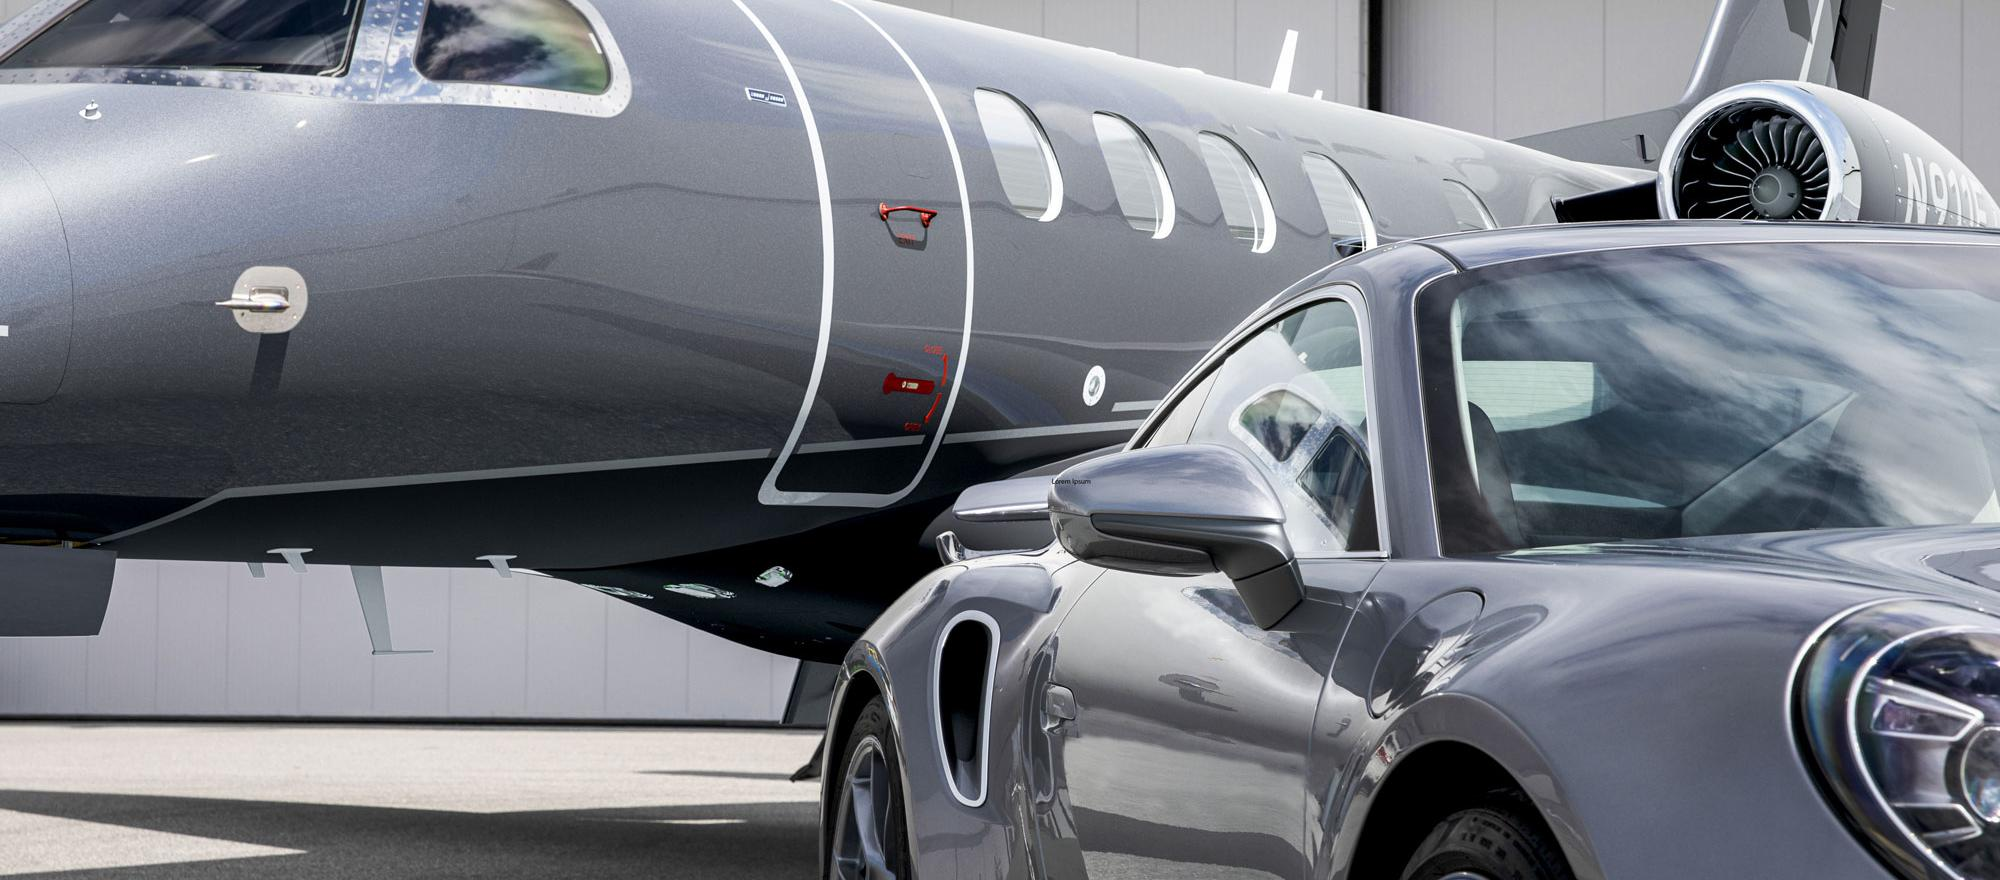 "Limited-edition Embraer Phenom 300E and Porsche 911 Turbo S ""Duet"" pairing"